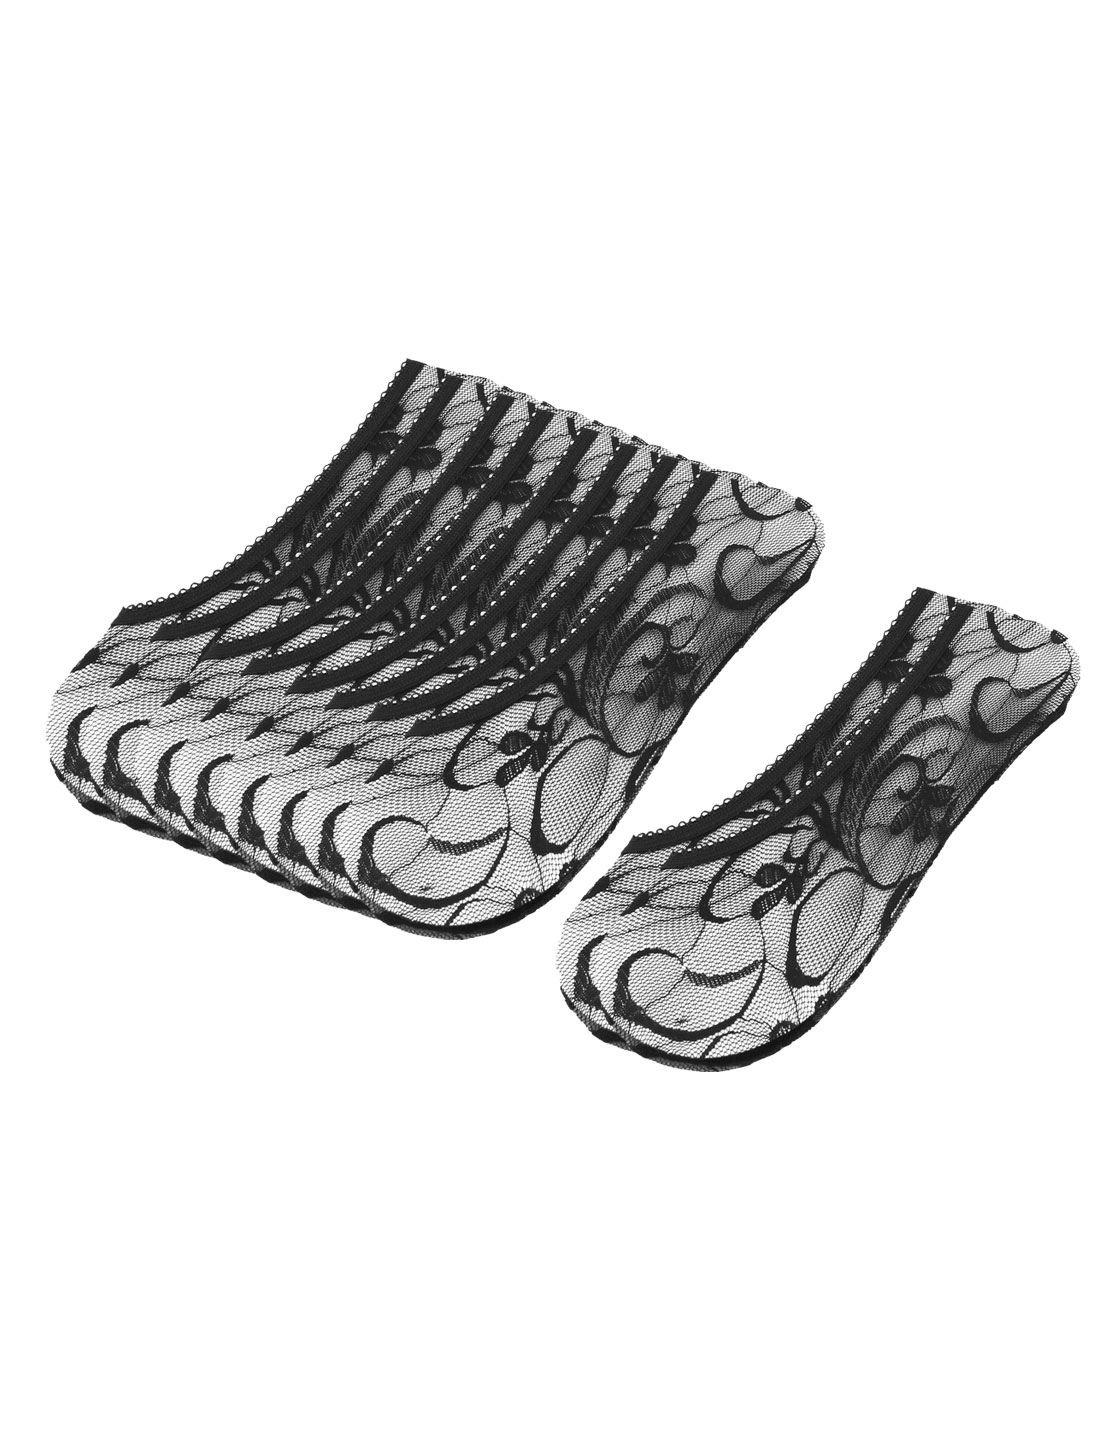 Lady Flowers Pattern Elastic Low Cut Invisible Boat Socks 5 Pairs Black